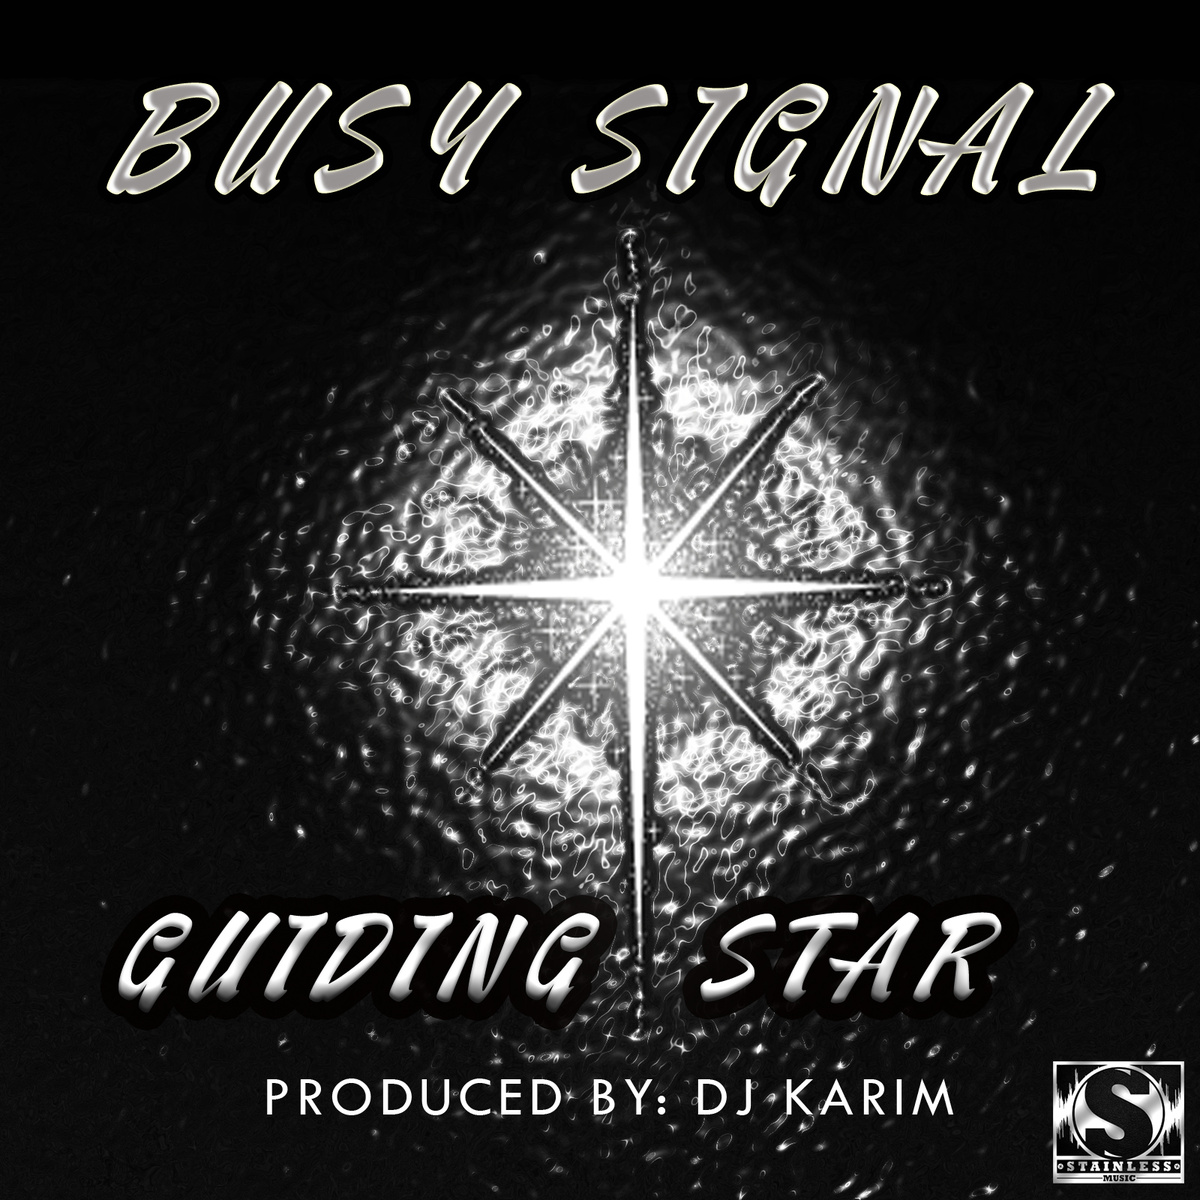 busy-signal-guiding-star-stainless-music-dj-karim-cover-artwork